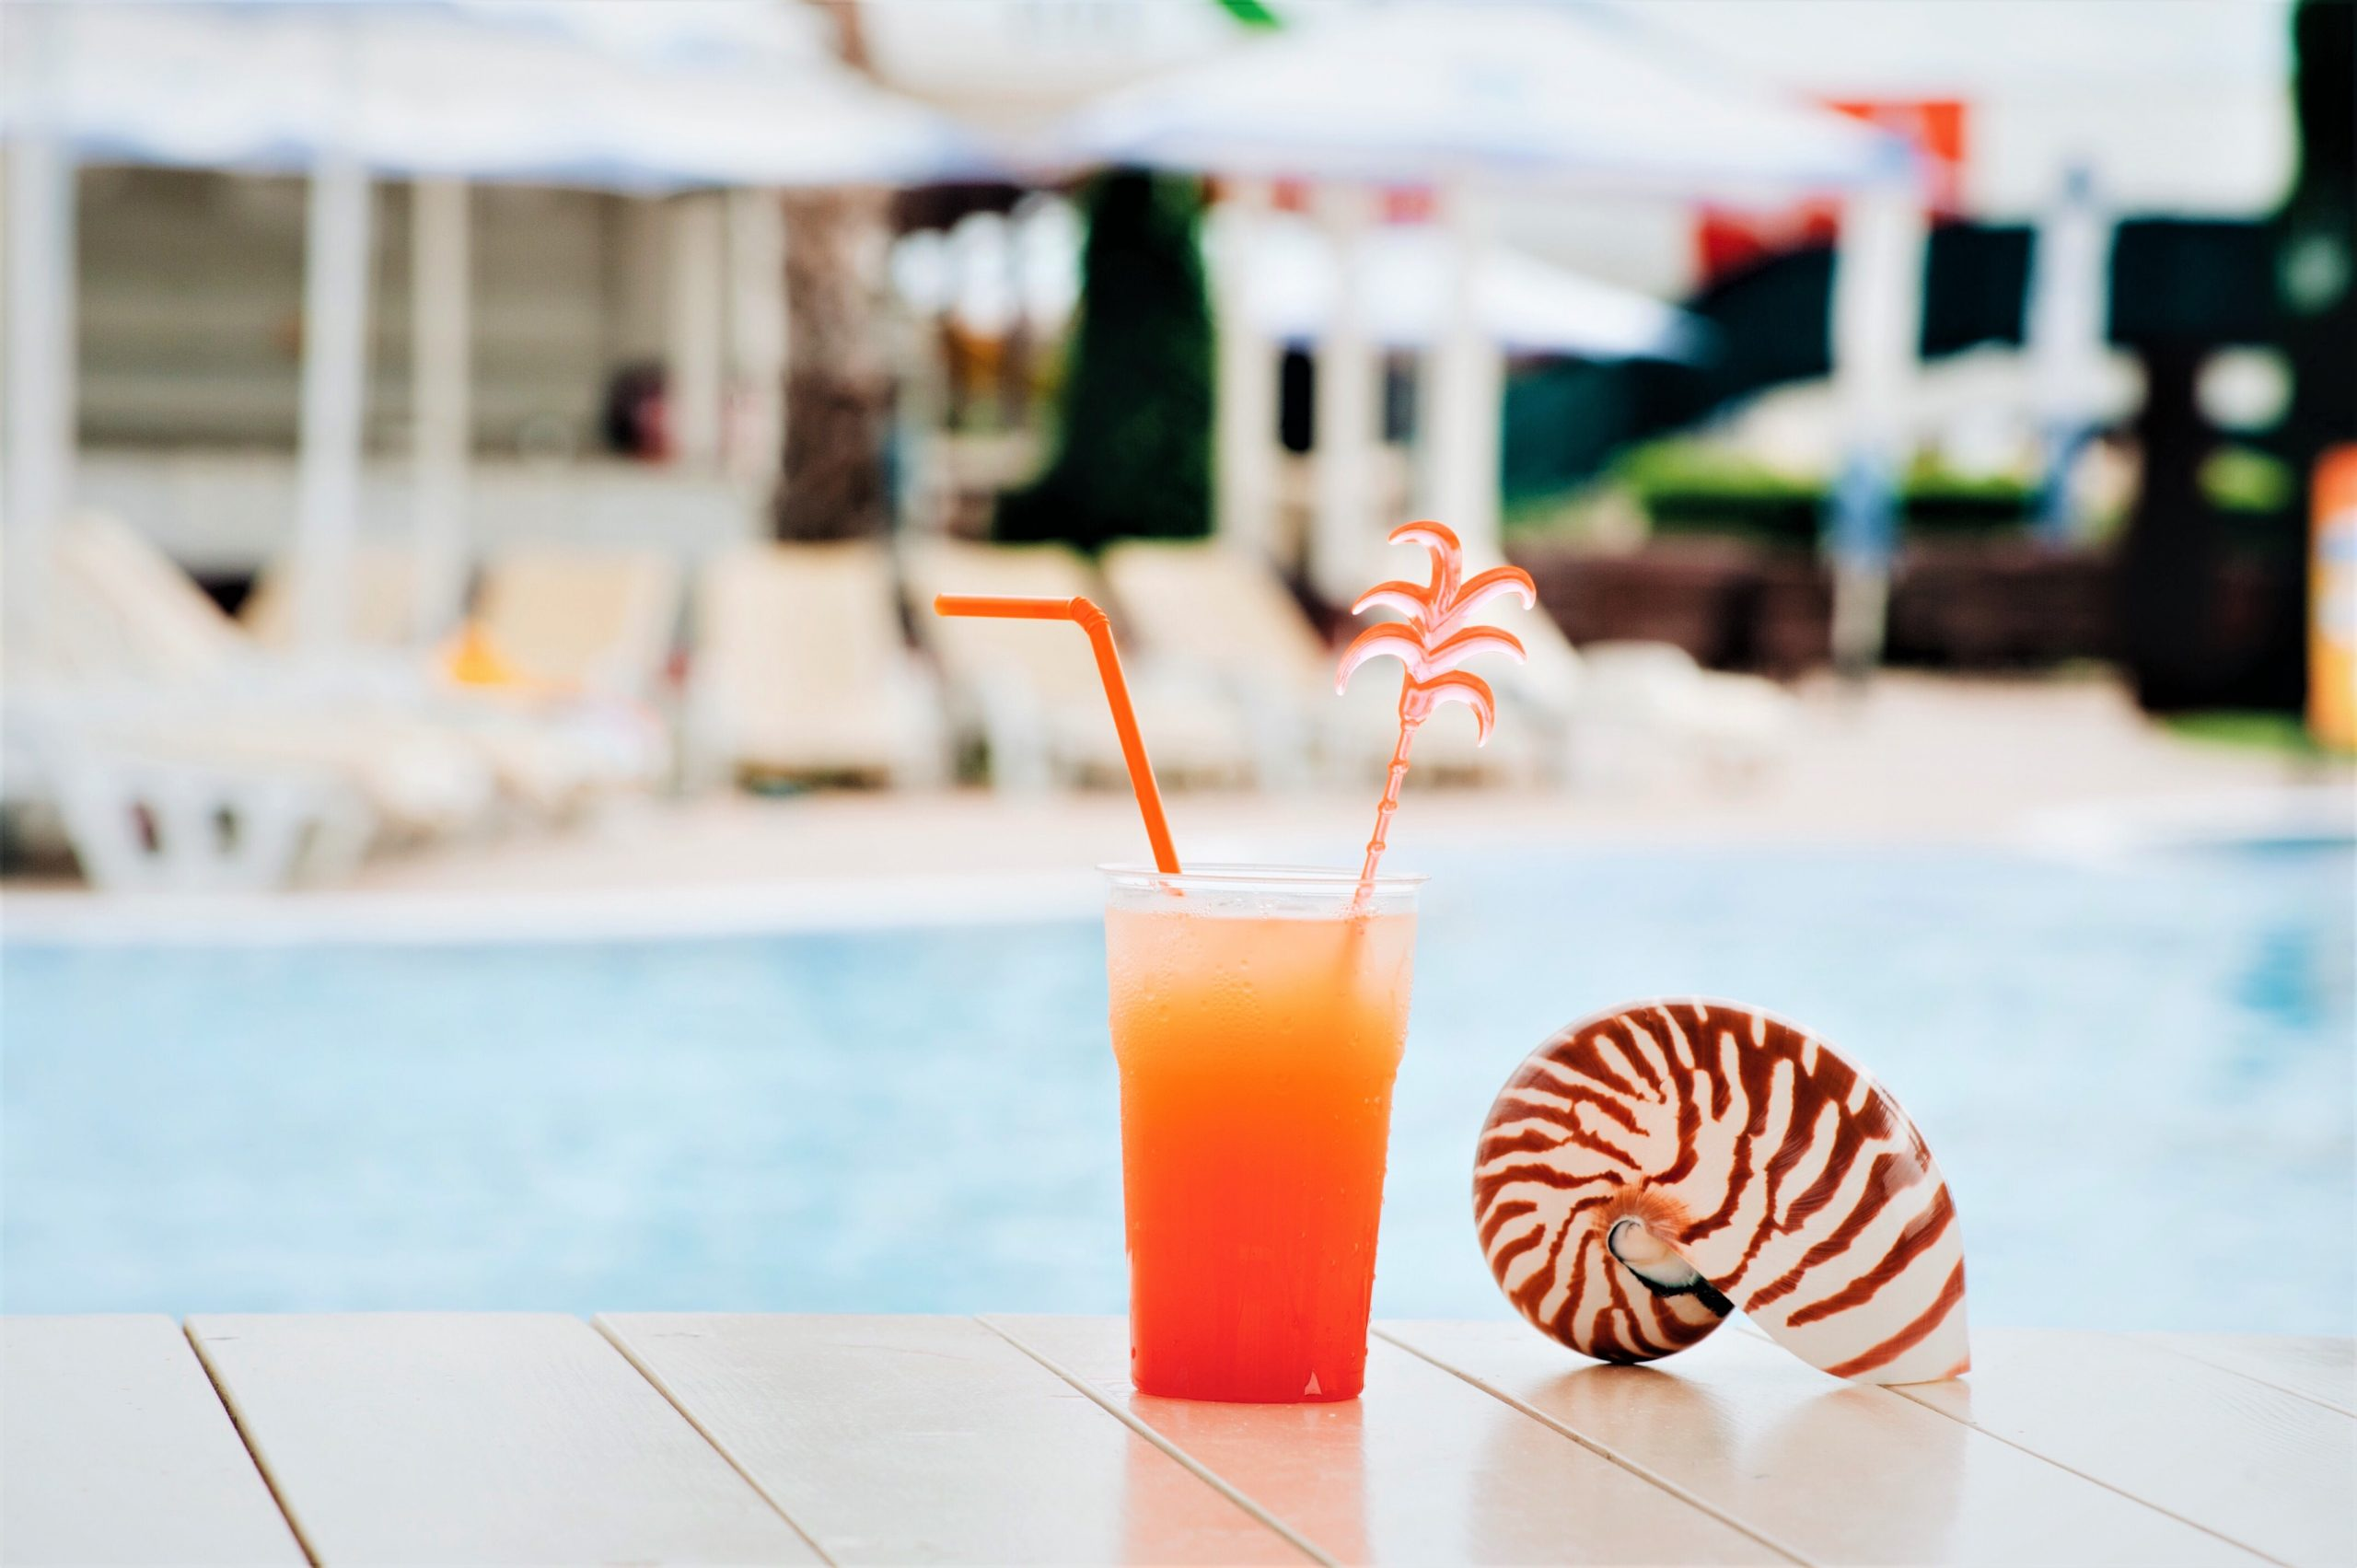 pool relaxation vacation cocktail EYSJVE2 scaled Мцхета Мцхета